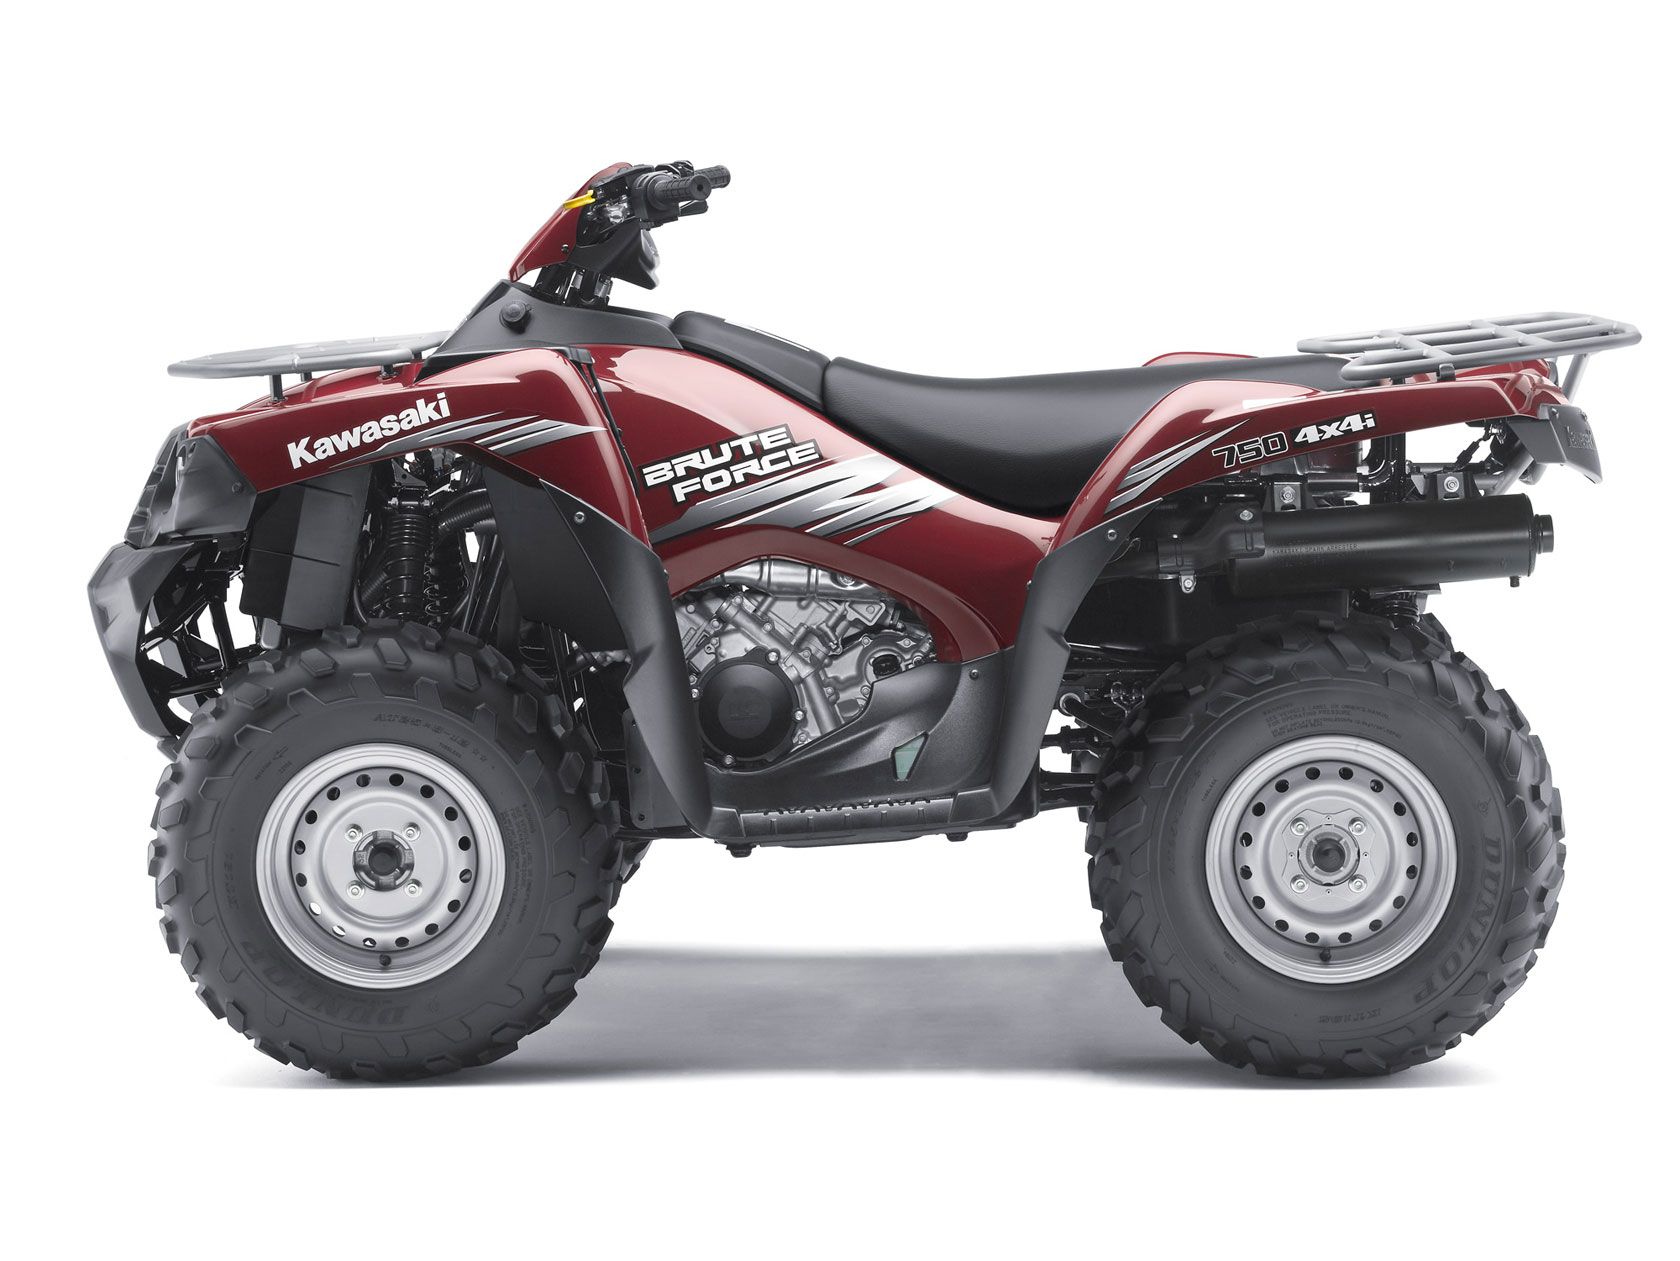 2011 Kawasaki Brute Force 750 Wiring Diagram Worksheet And 2005 Bayou 4x4i Specs 2010 Autoevolution Rh Com 220 Parts